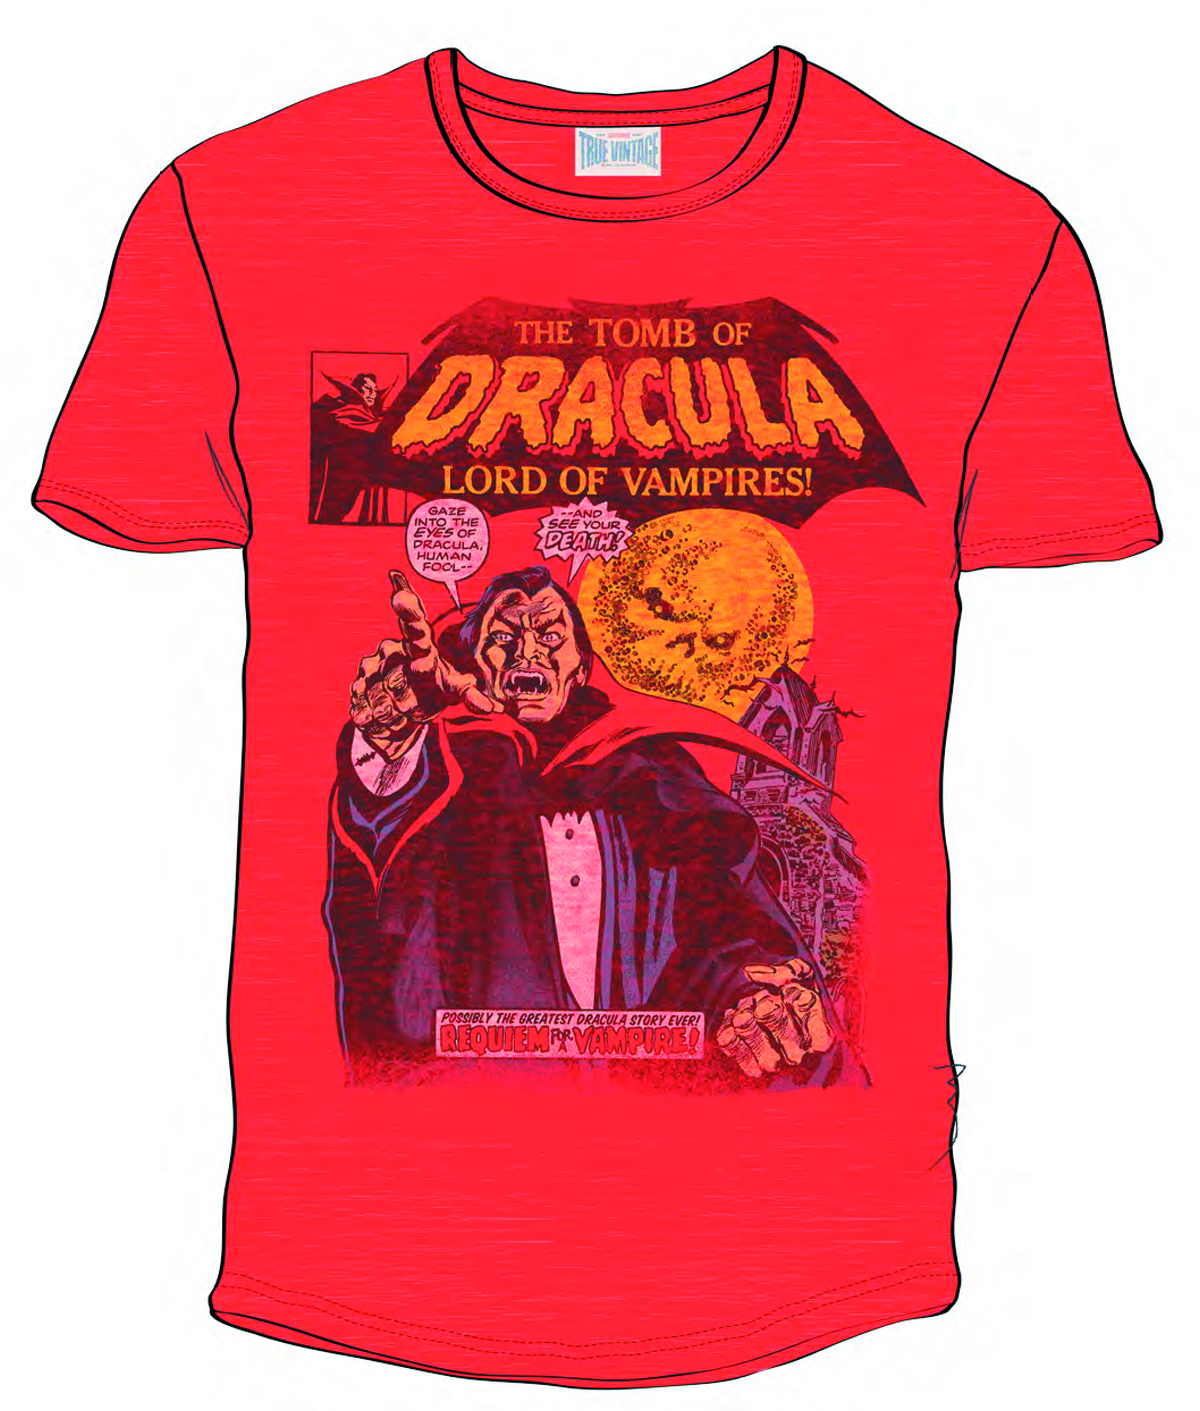 TOMB OF DRACULA PX RED T/S MED